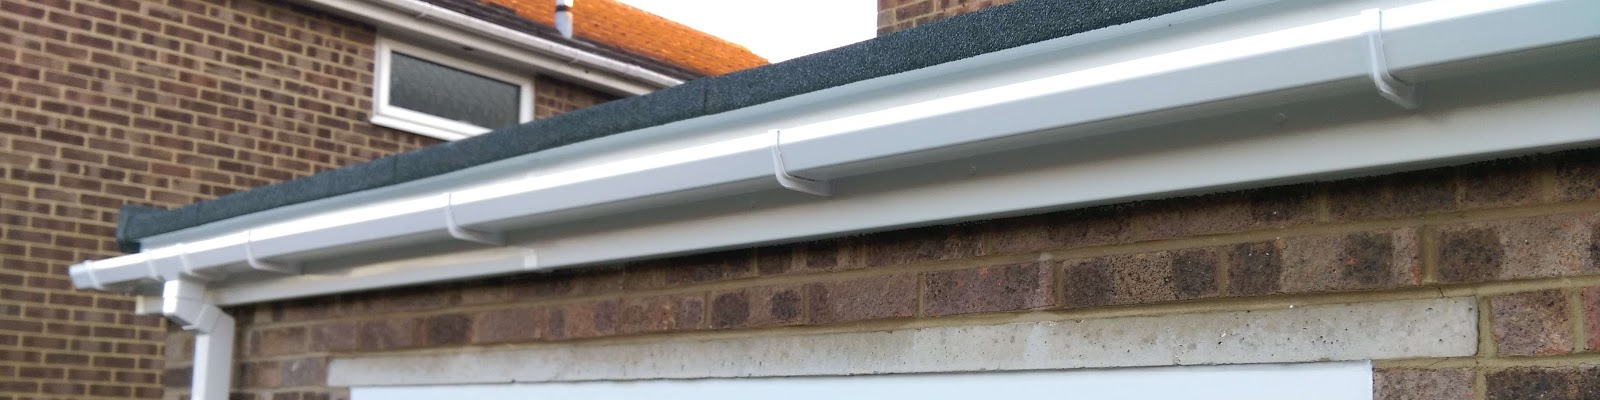 a newly installed gutter on facebrick home